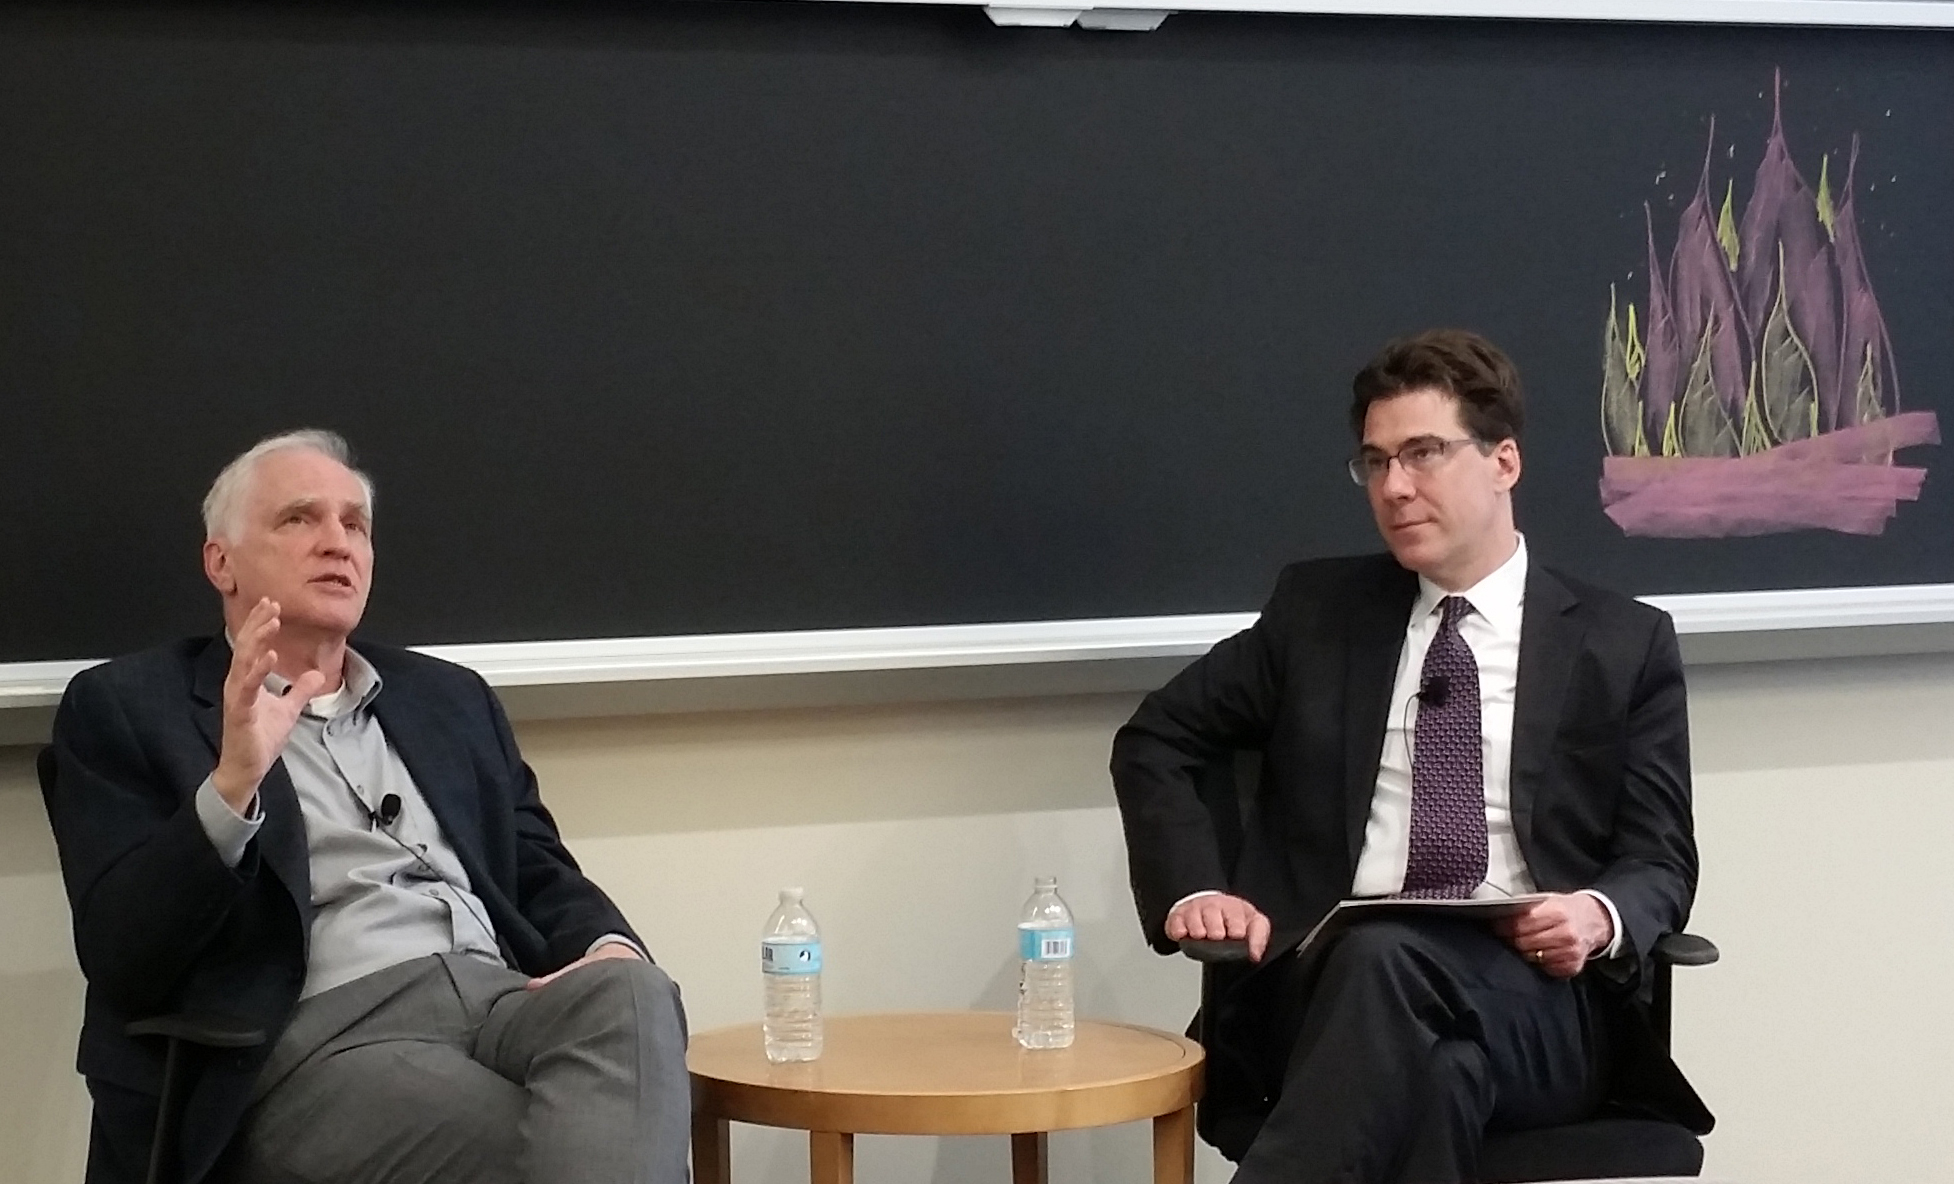 Fireside Chat with Daniel Tarullo